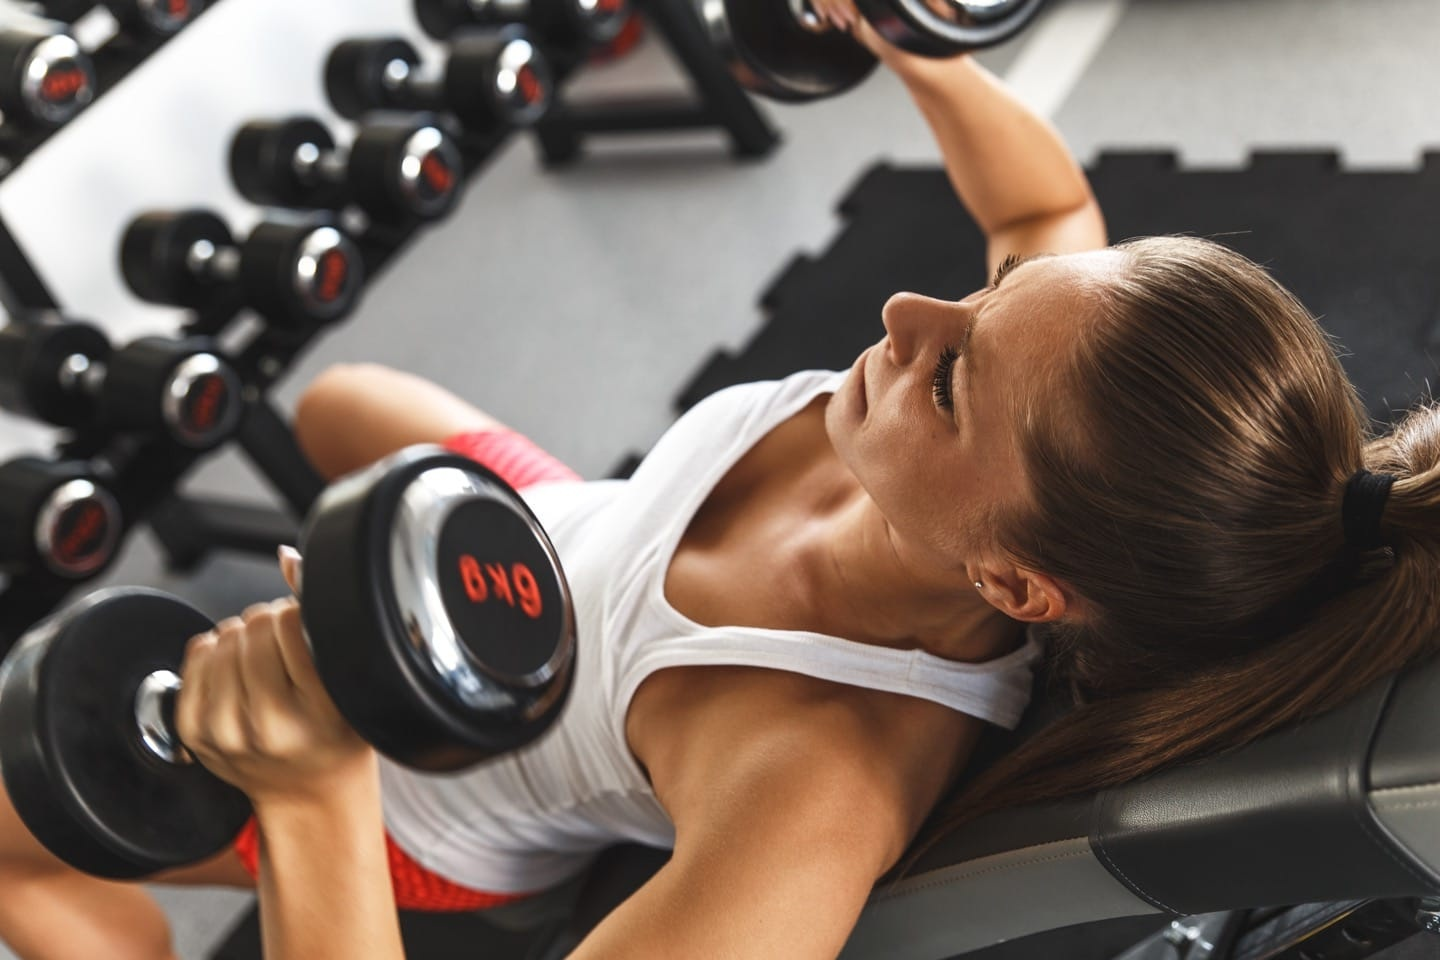 How Exercise Makes You Better Than Others